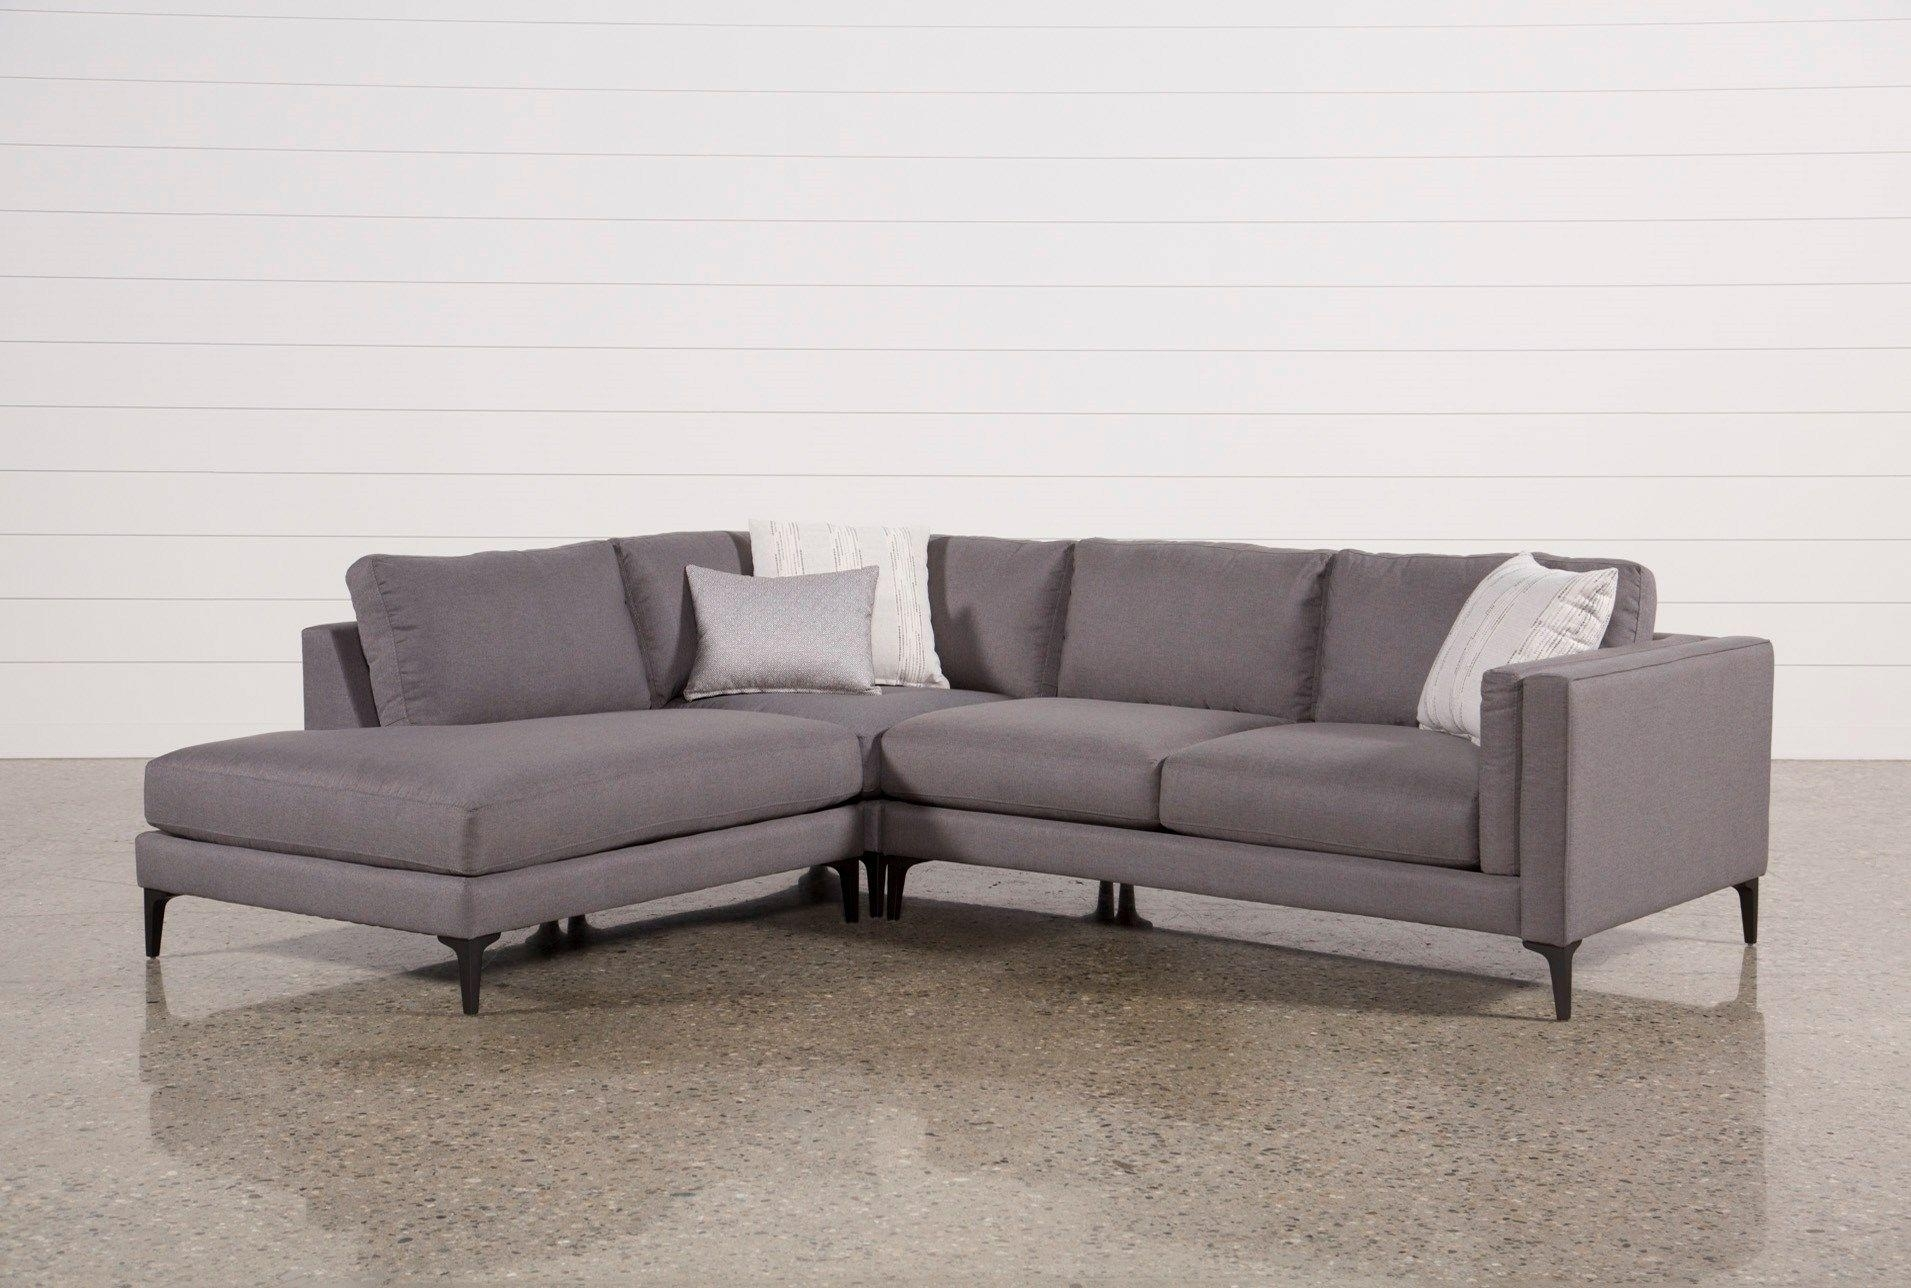 10 Inspirations Seattle Sectional Sofas   Sofa Ideas